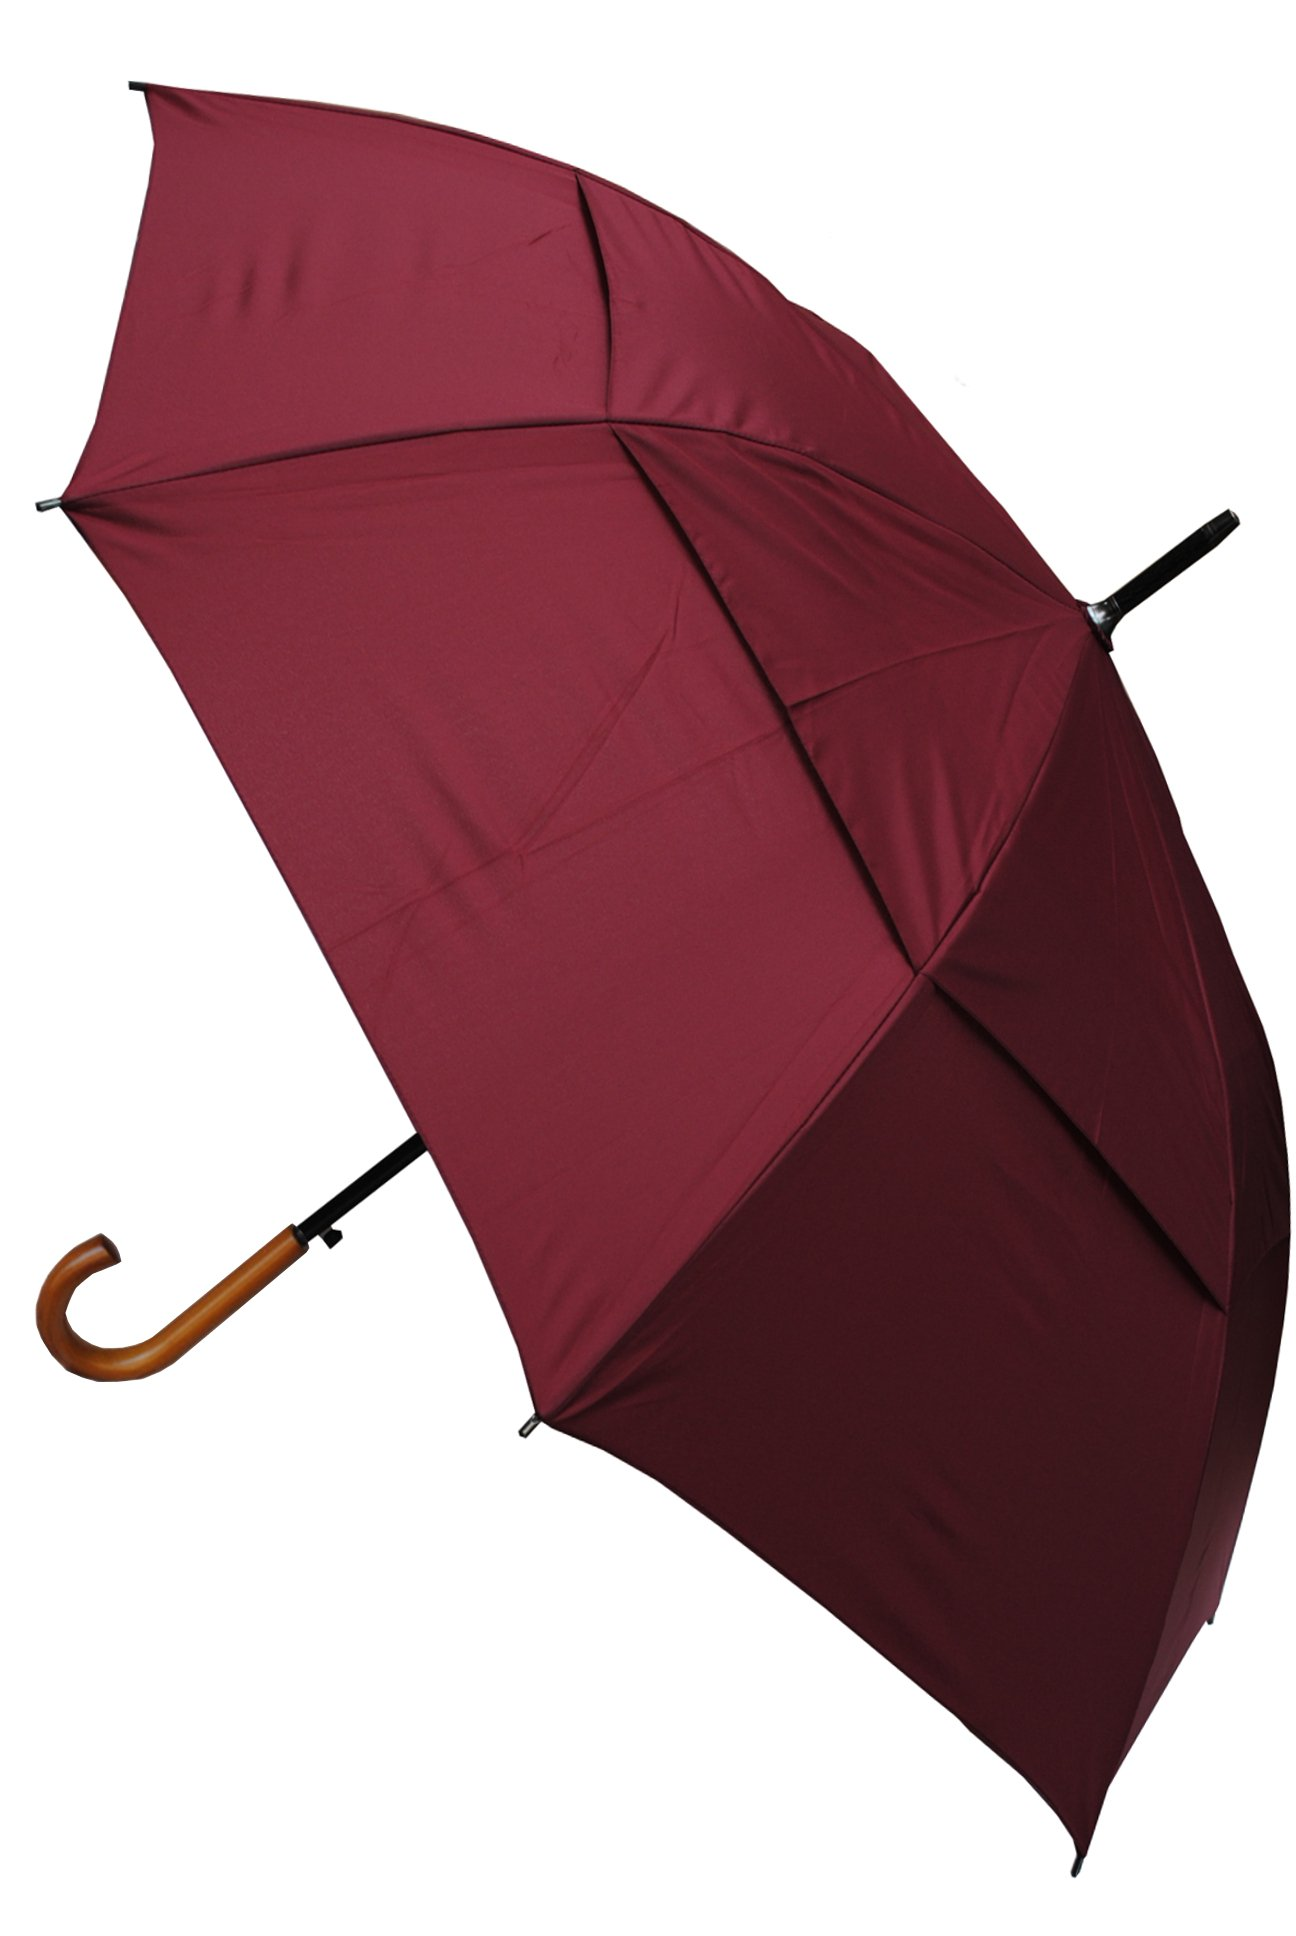 COLLAR AND CUFFS LONDON - Windproof EXTRA STRONG - City Umbrella - Vented Canopy - Auto - Solid Wood Hook Handle Burgundy Red